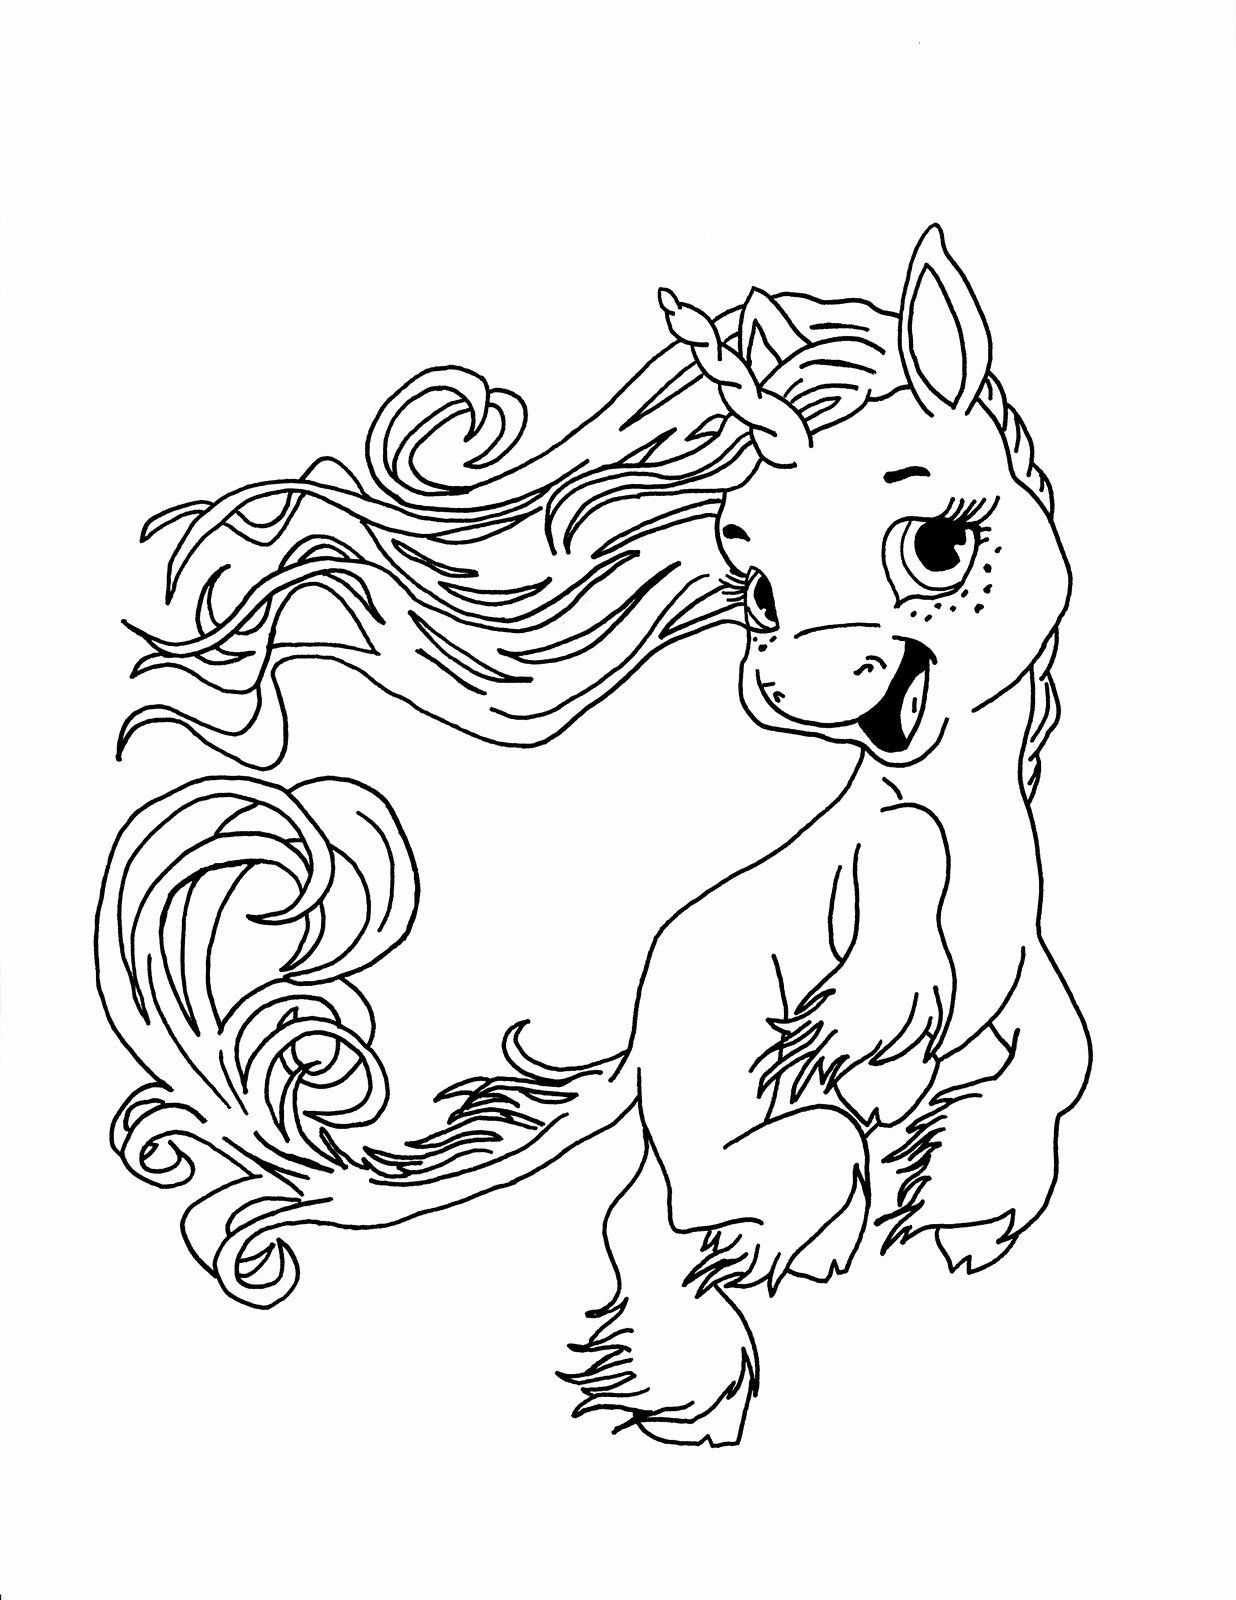 Chicken Nuggets Coloring Pages Beautiful Elegant Agnes Unicorn Coloring Pages Trasporti Unicorn Coloring Pages Unicorn Pictures To Color Horse Coloring Pages